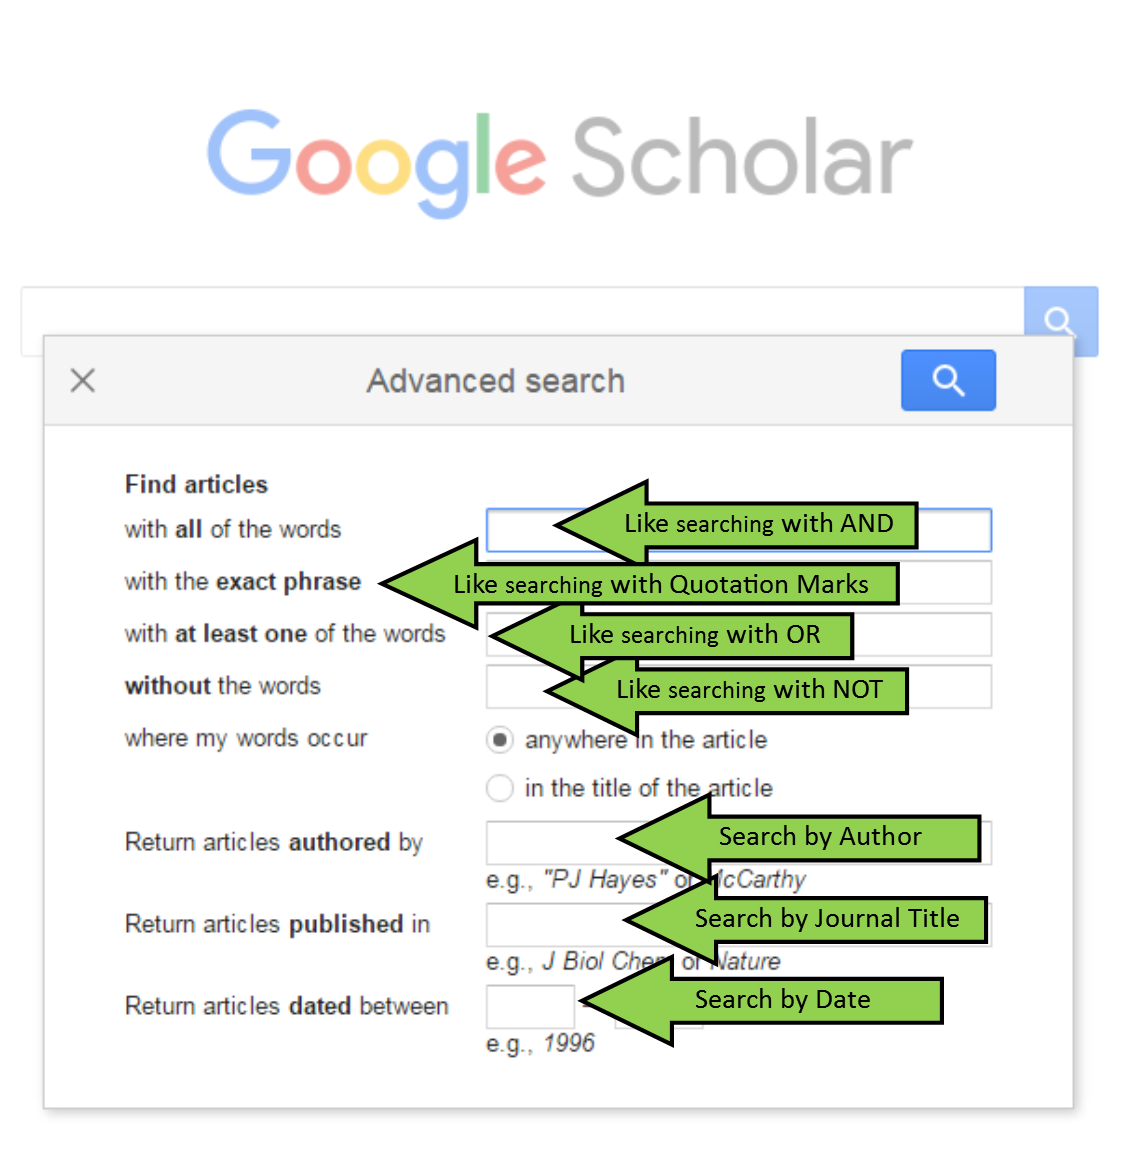 Google Scholar advanced search screen capture